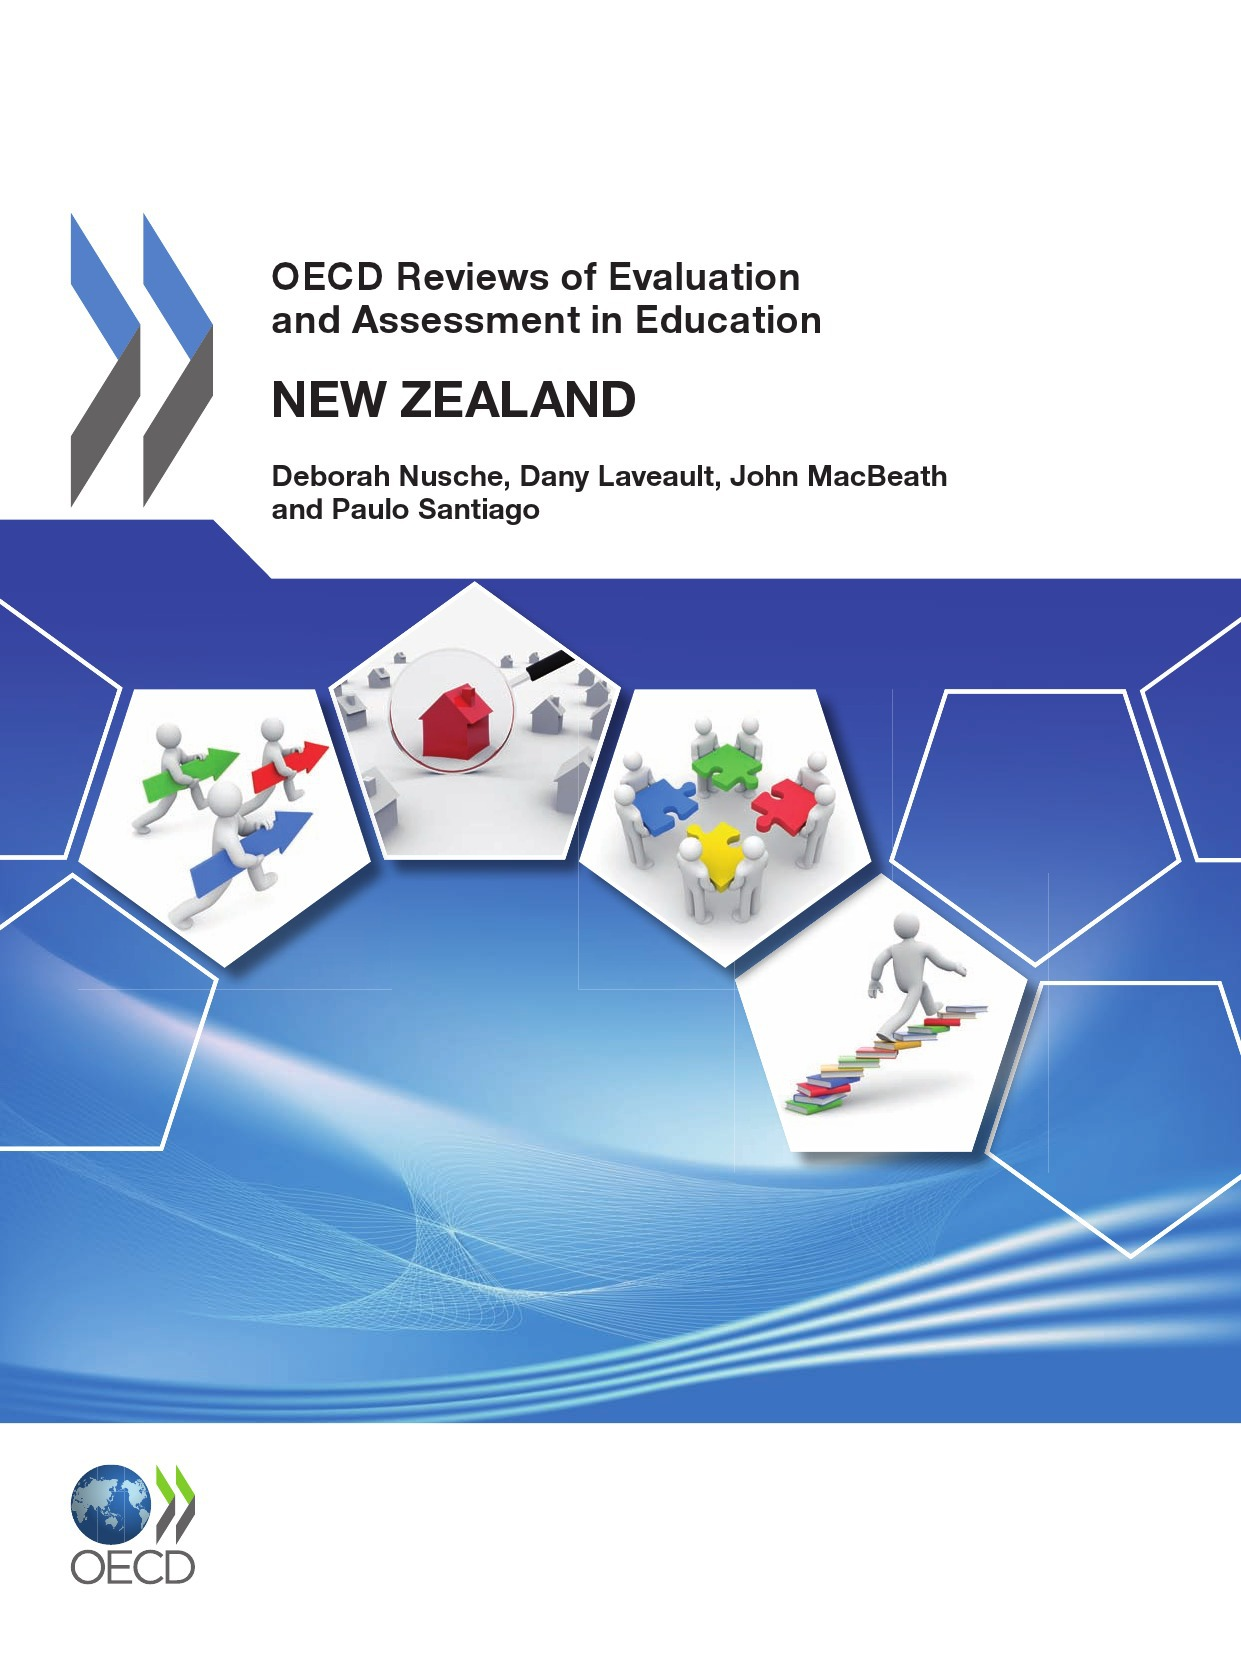 OECD Reviews of Evaluation and Assessment in Education: New Zealand 2011